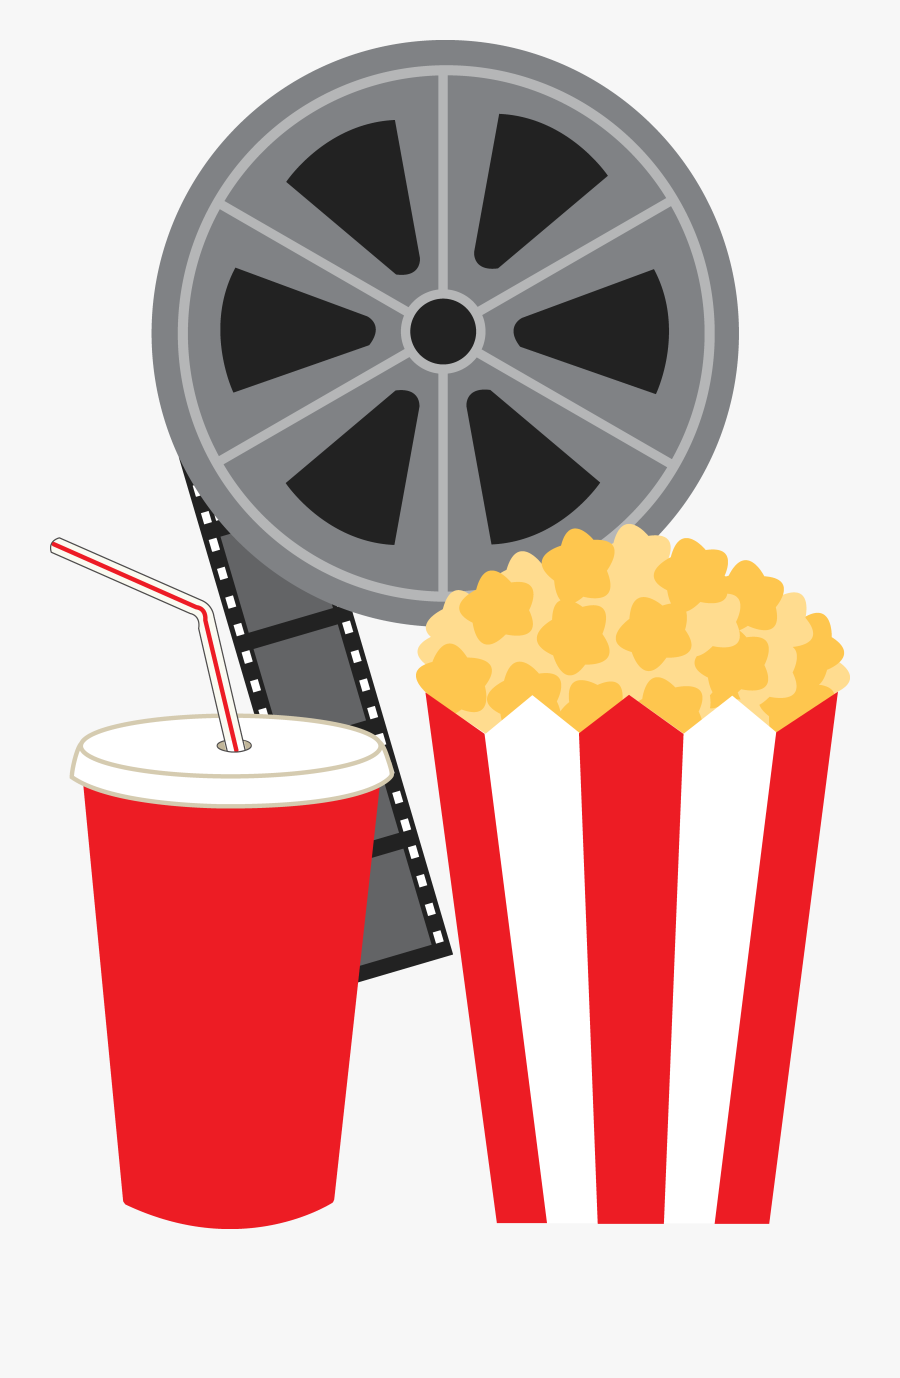 Clipart Of Movie, Films And Cinema - Movie Reel Clipart, Transparent Clipart